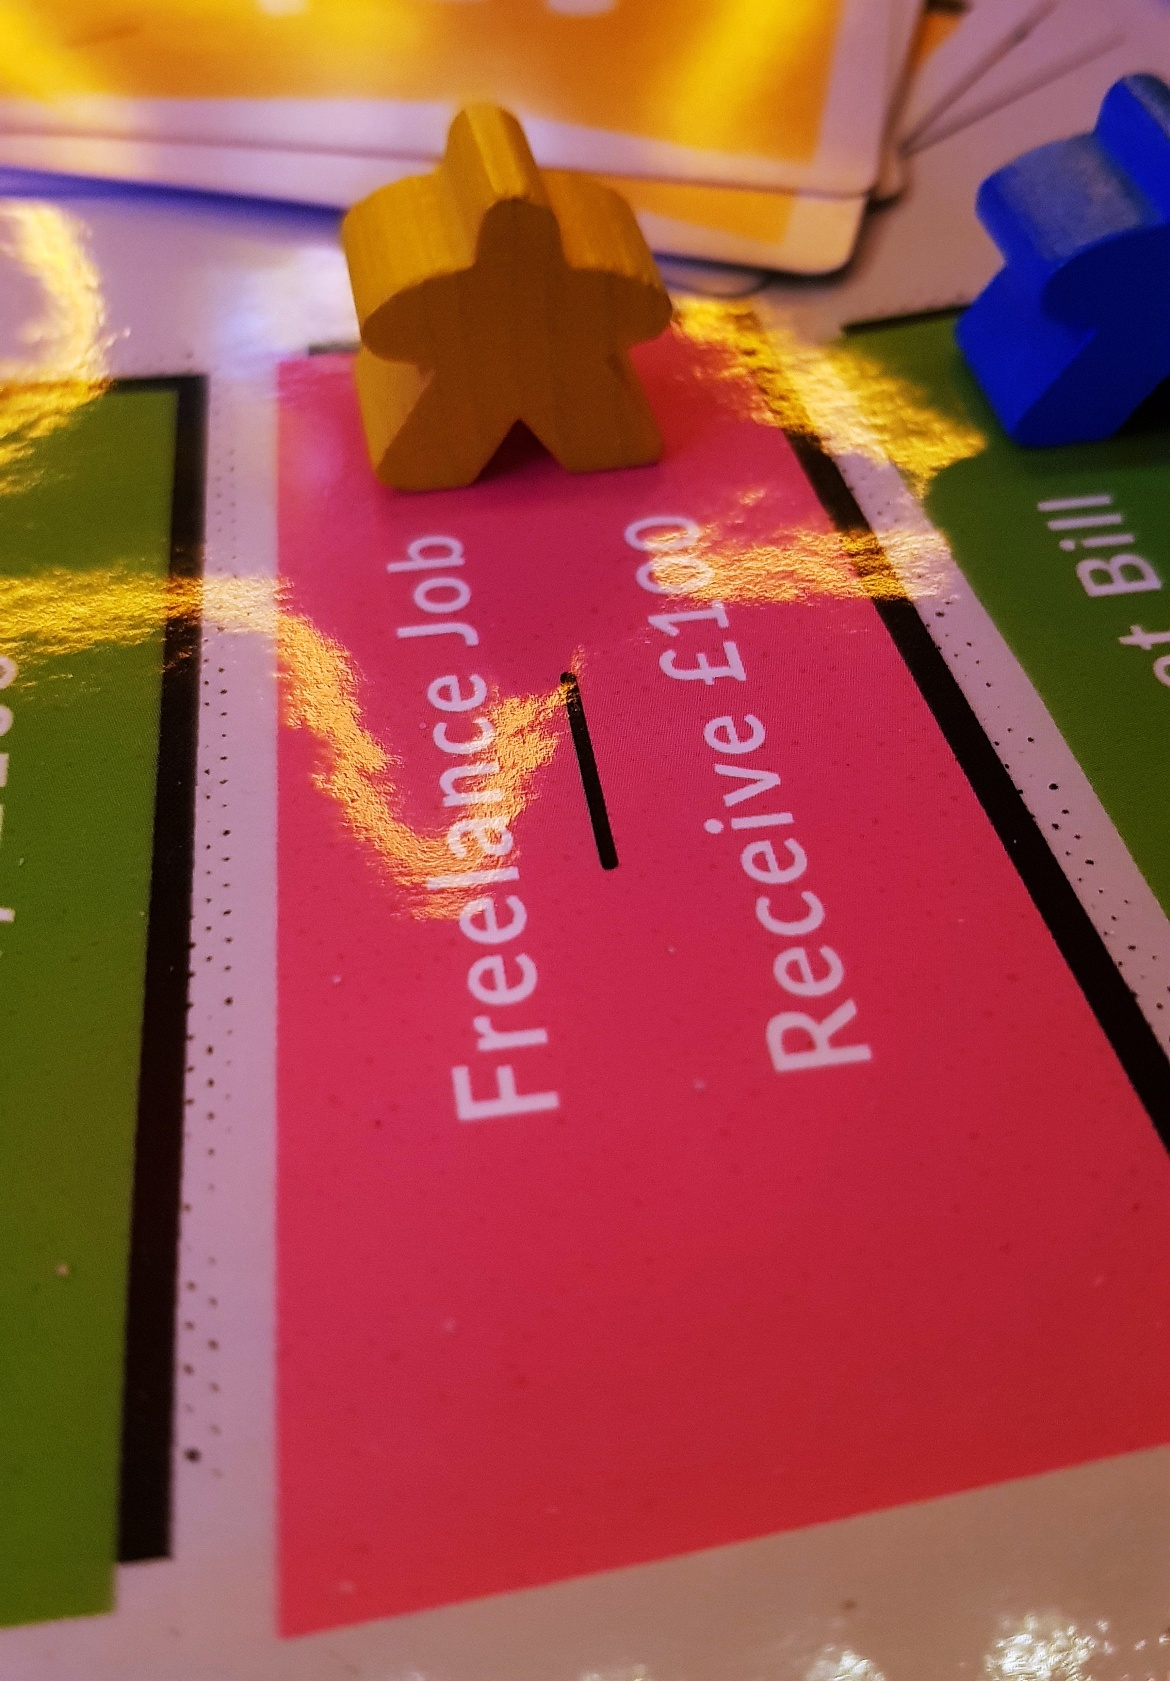 Freelance job space - giffgaff gameplan's Spend or Save boardgame by BeckyBecky Blogs